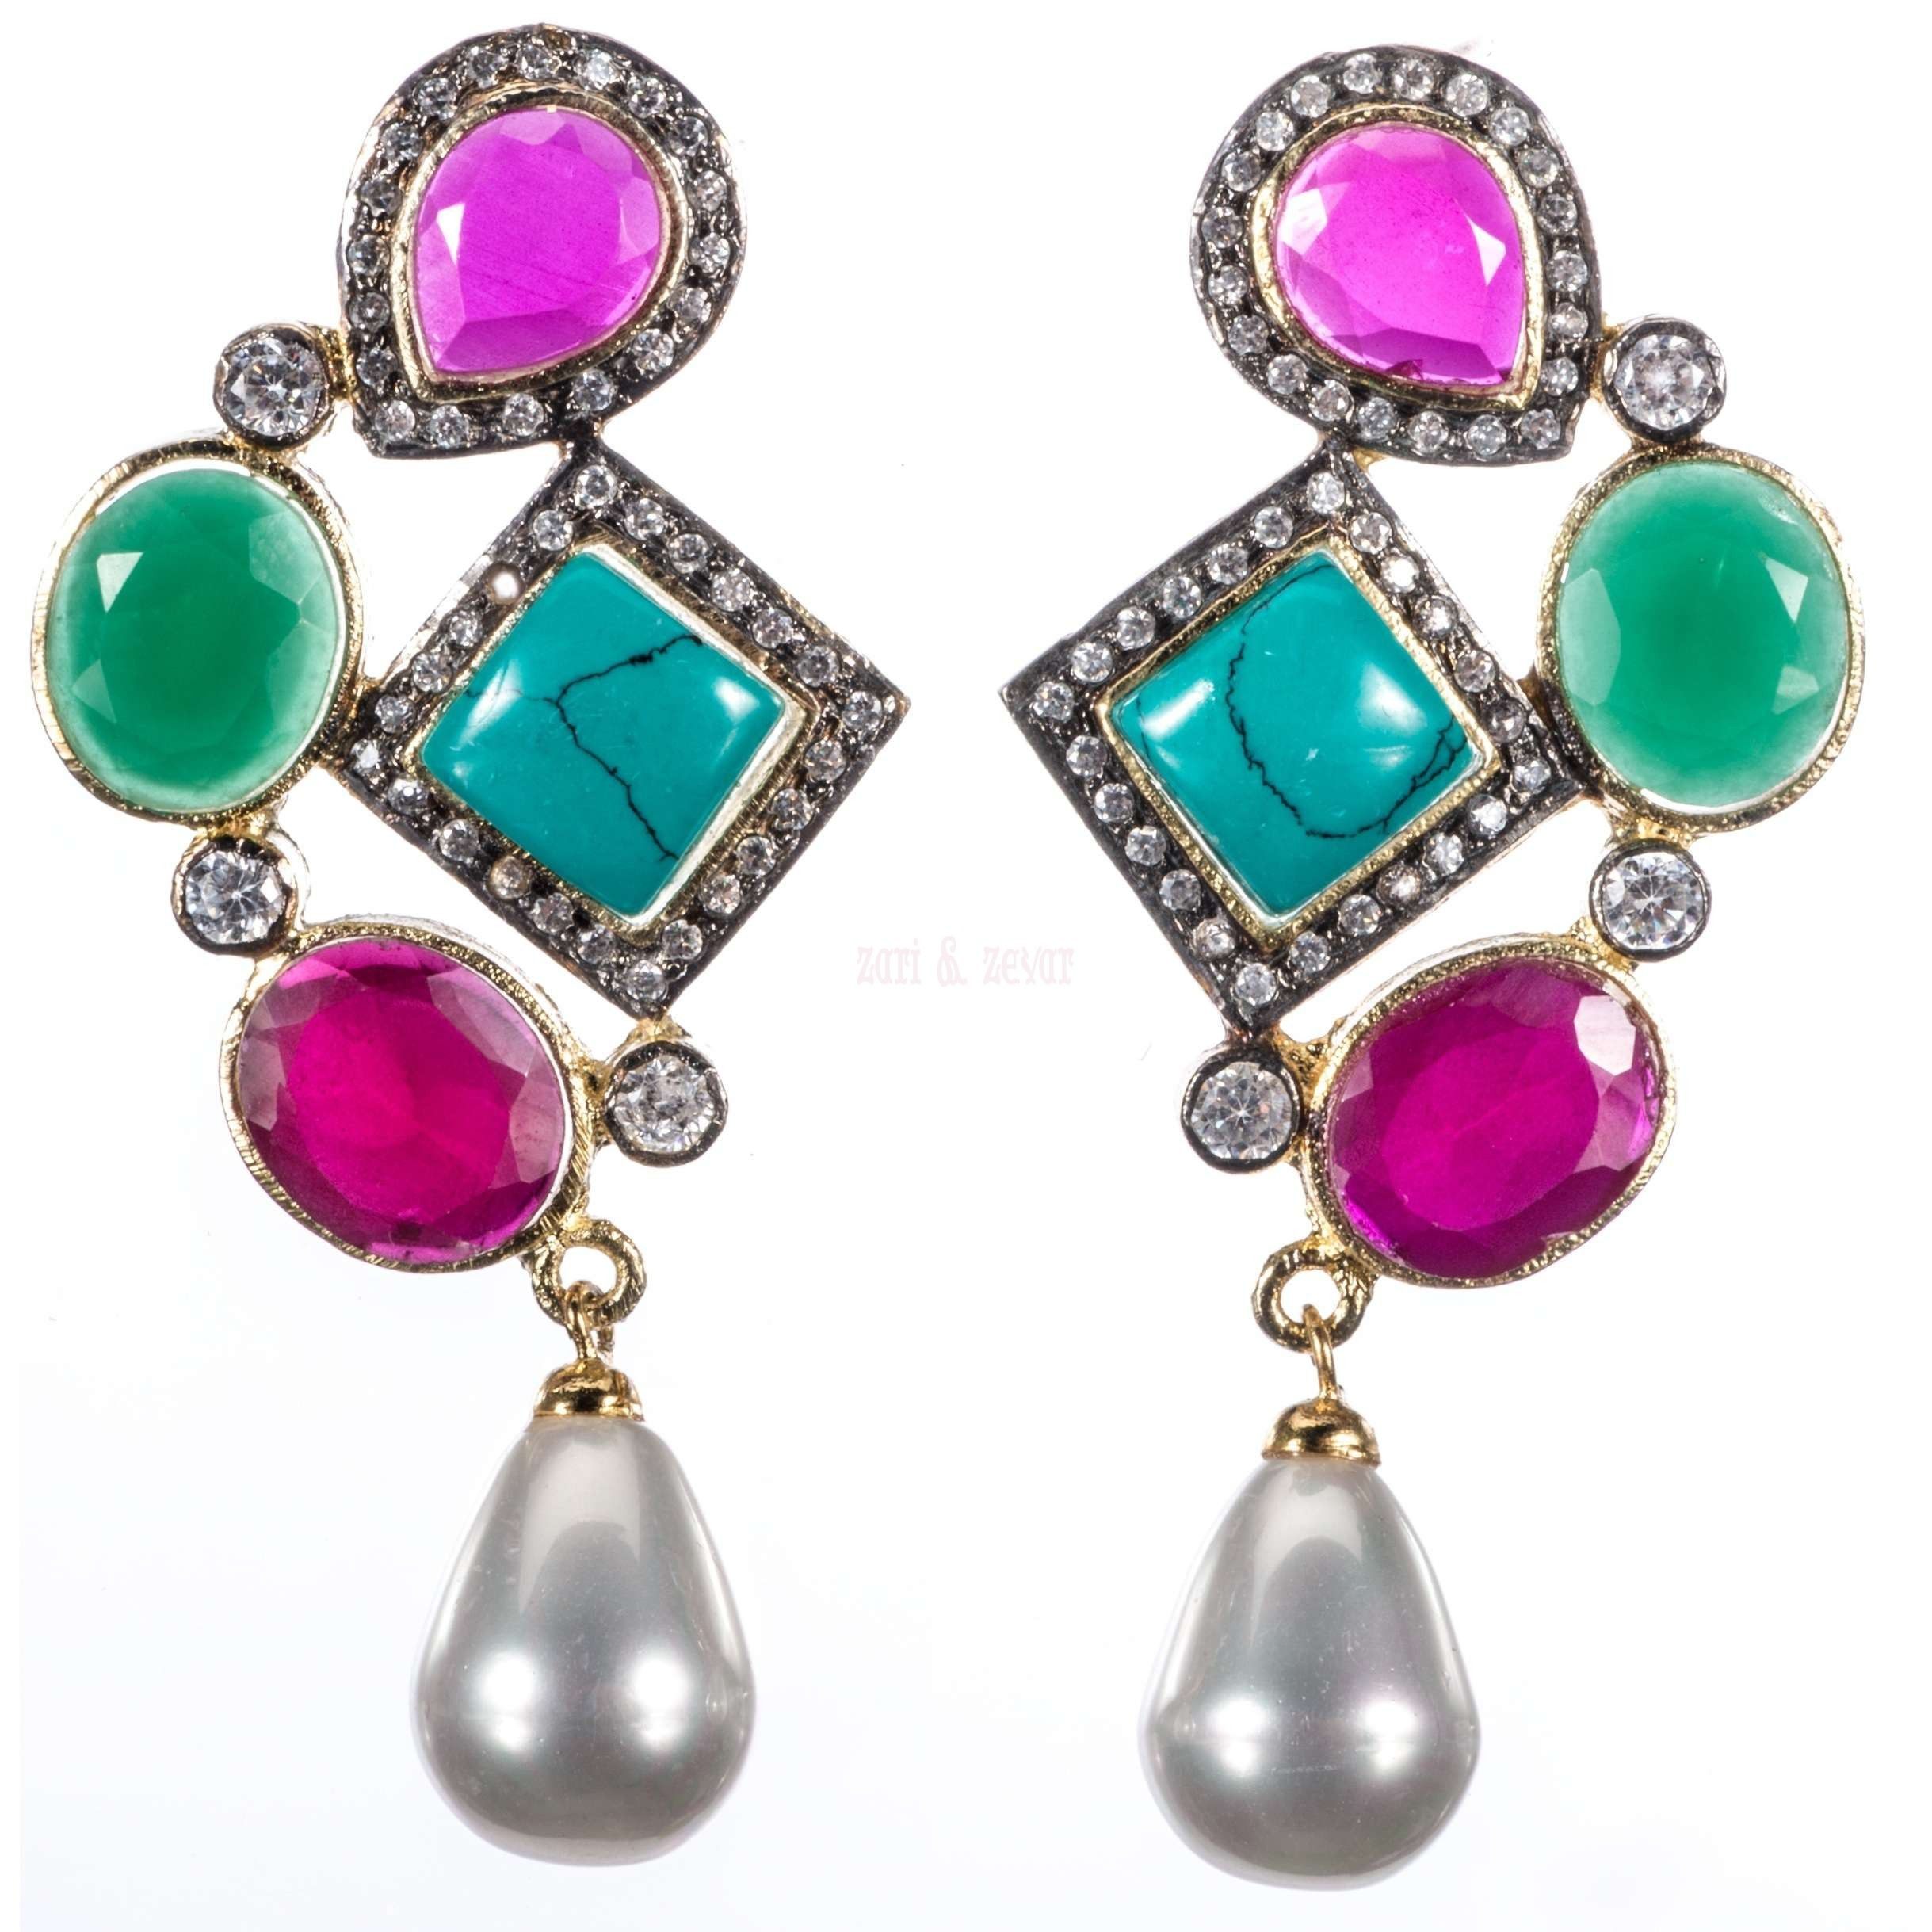 watches sterling silver pearl style over overstock thai freshwater pink jewelry multi earrings tha gemstone mm on thailand free product handmade dangling shipping multicolor orders